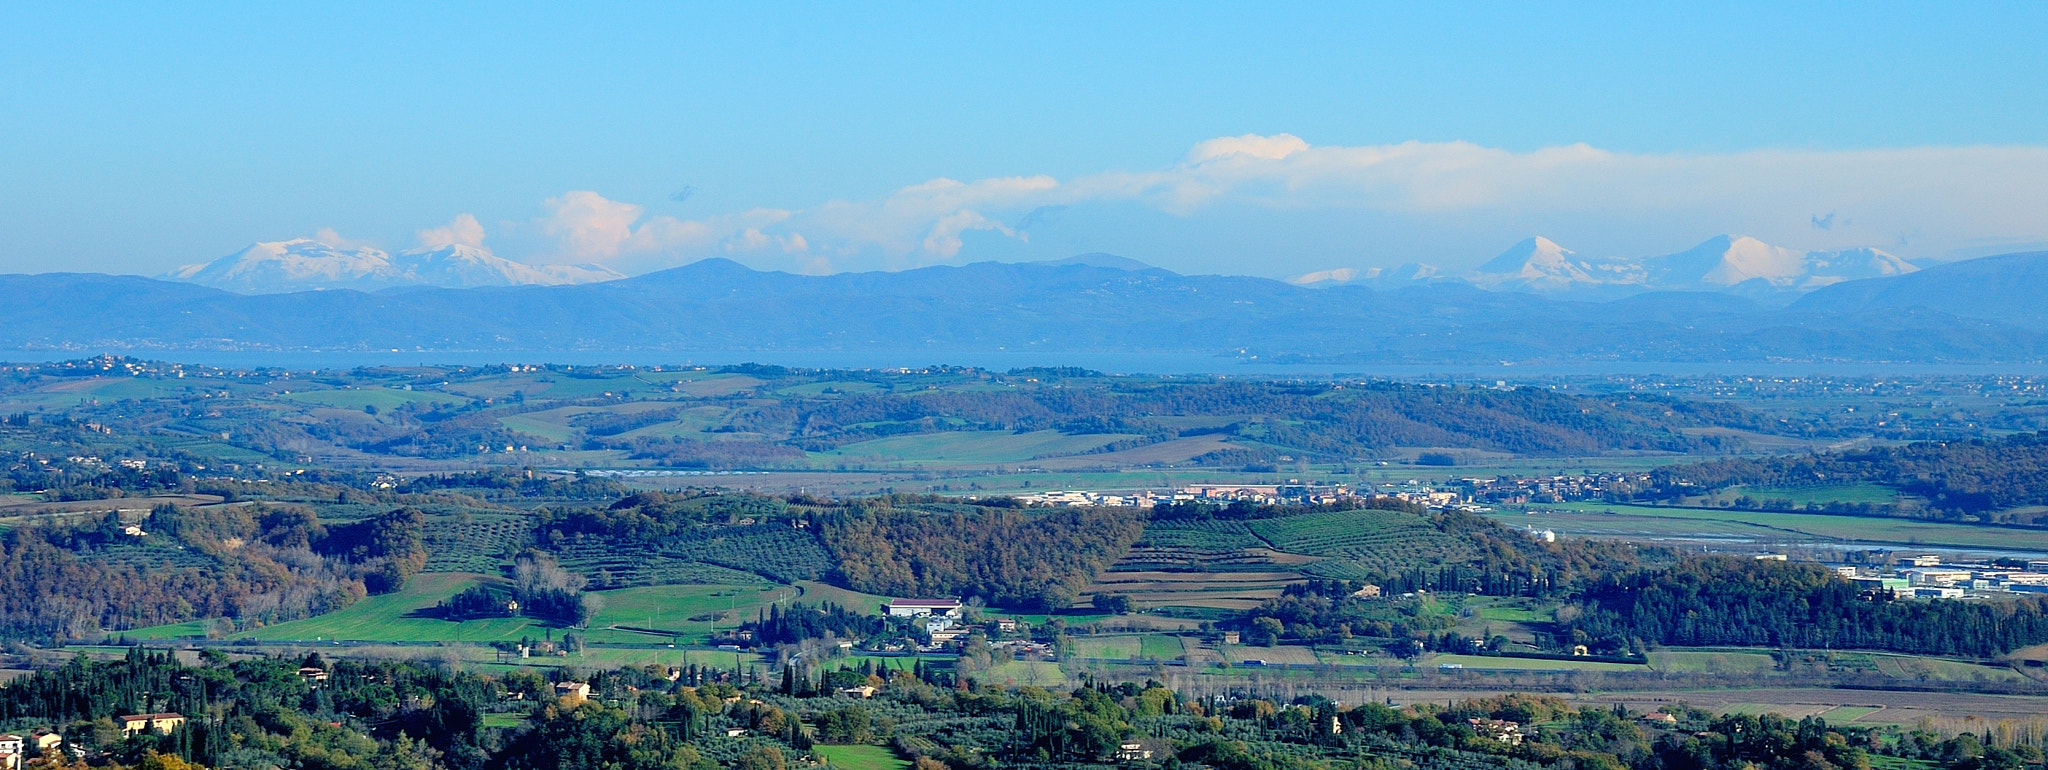 Photograph Three Italian regions: Tuscany, Umbria and Marche... by Renato Pantini on 500px